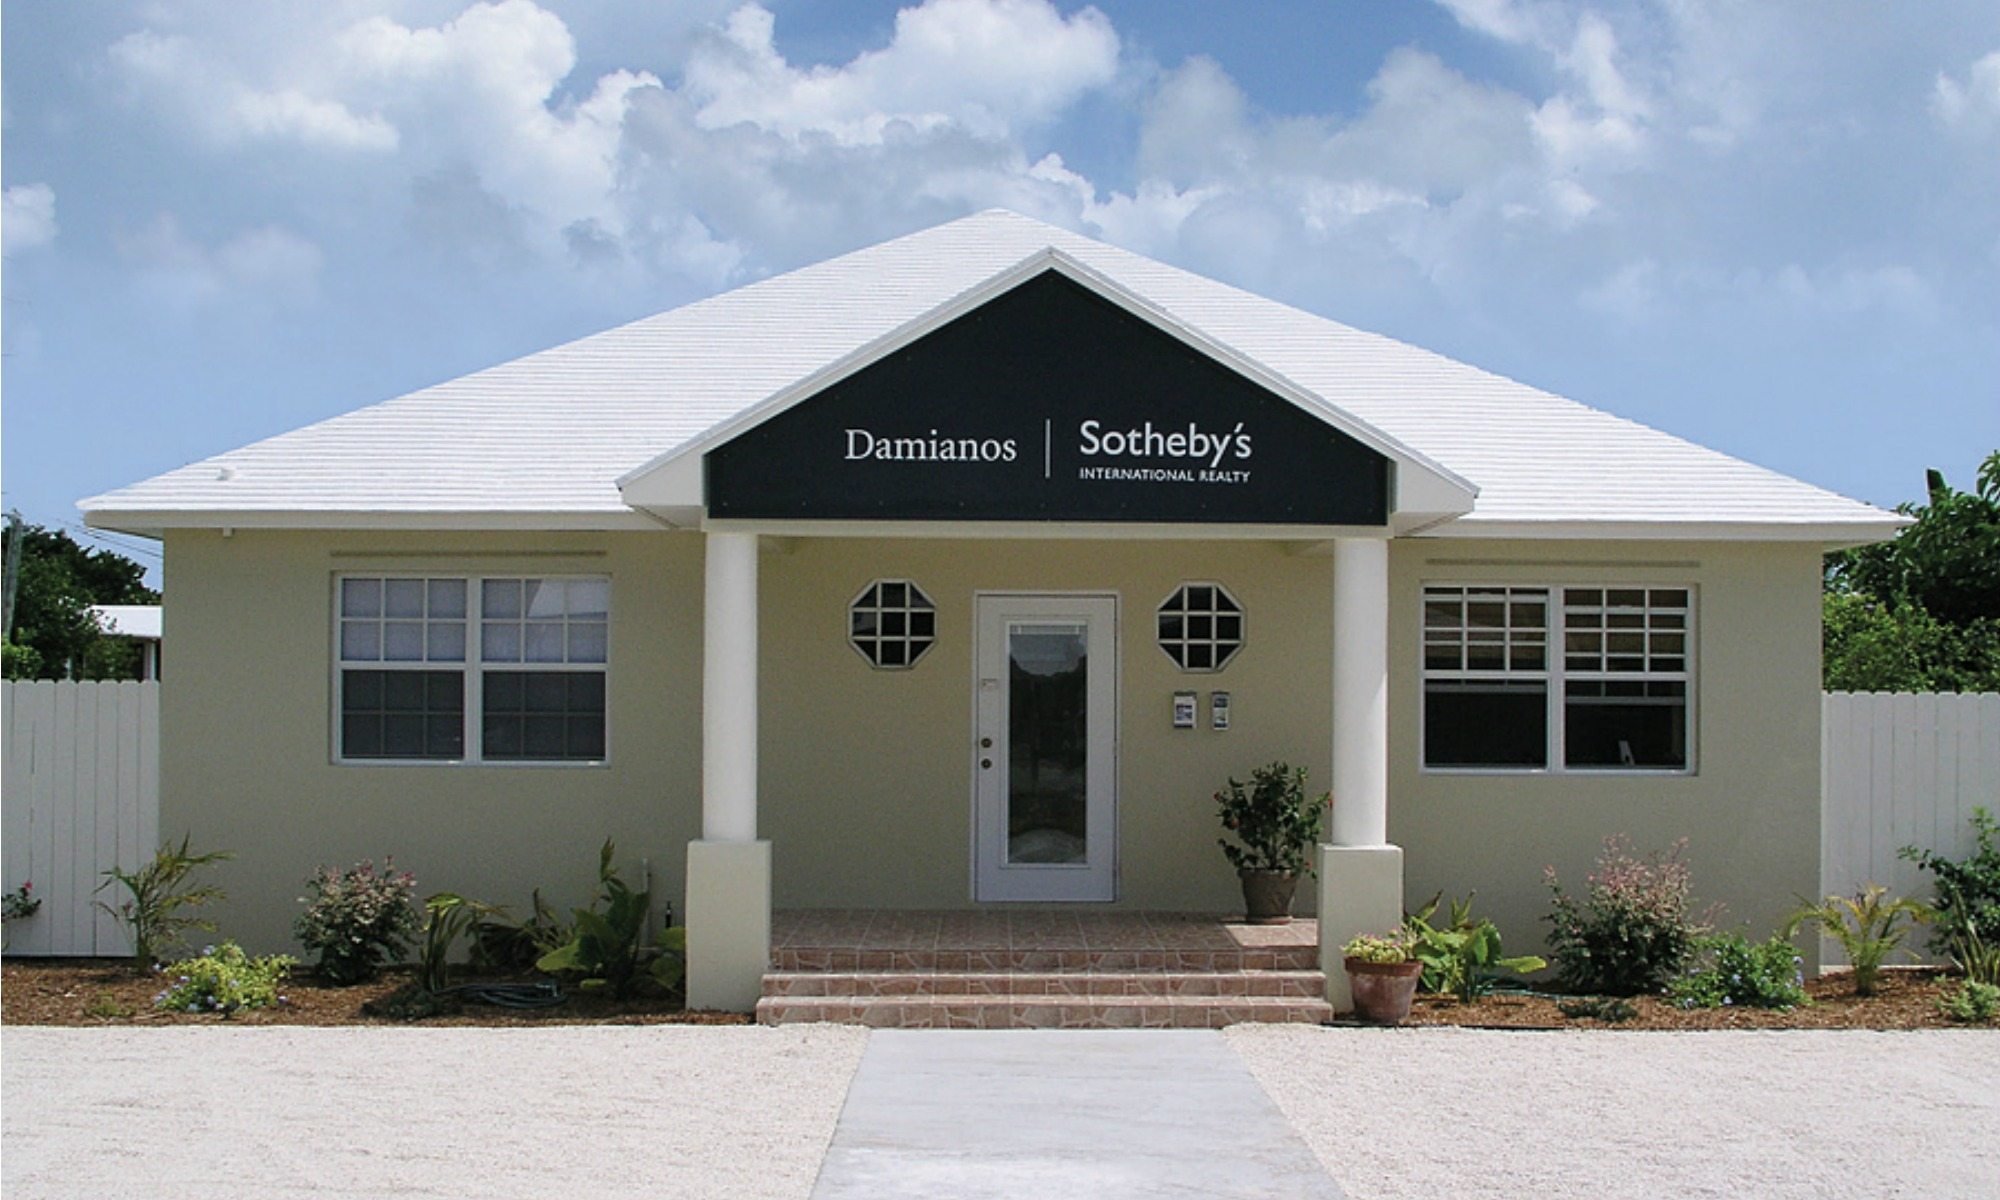 Office Damianos Sotheby's International Realty Photo